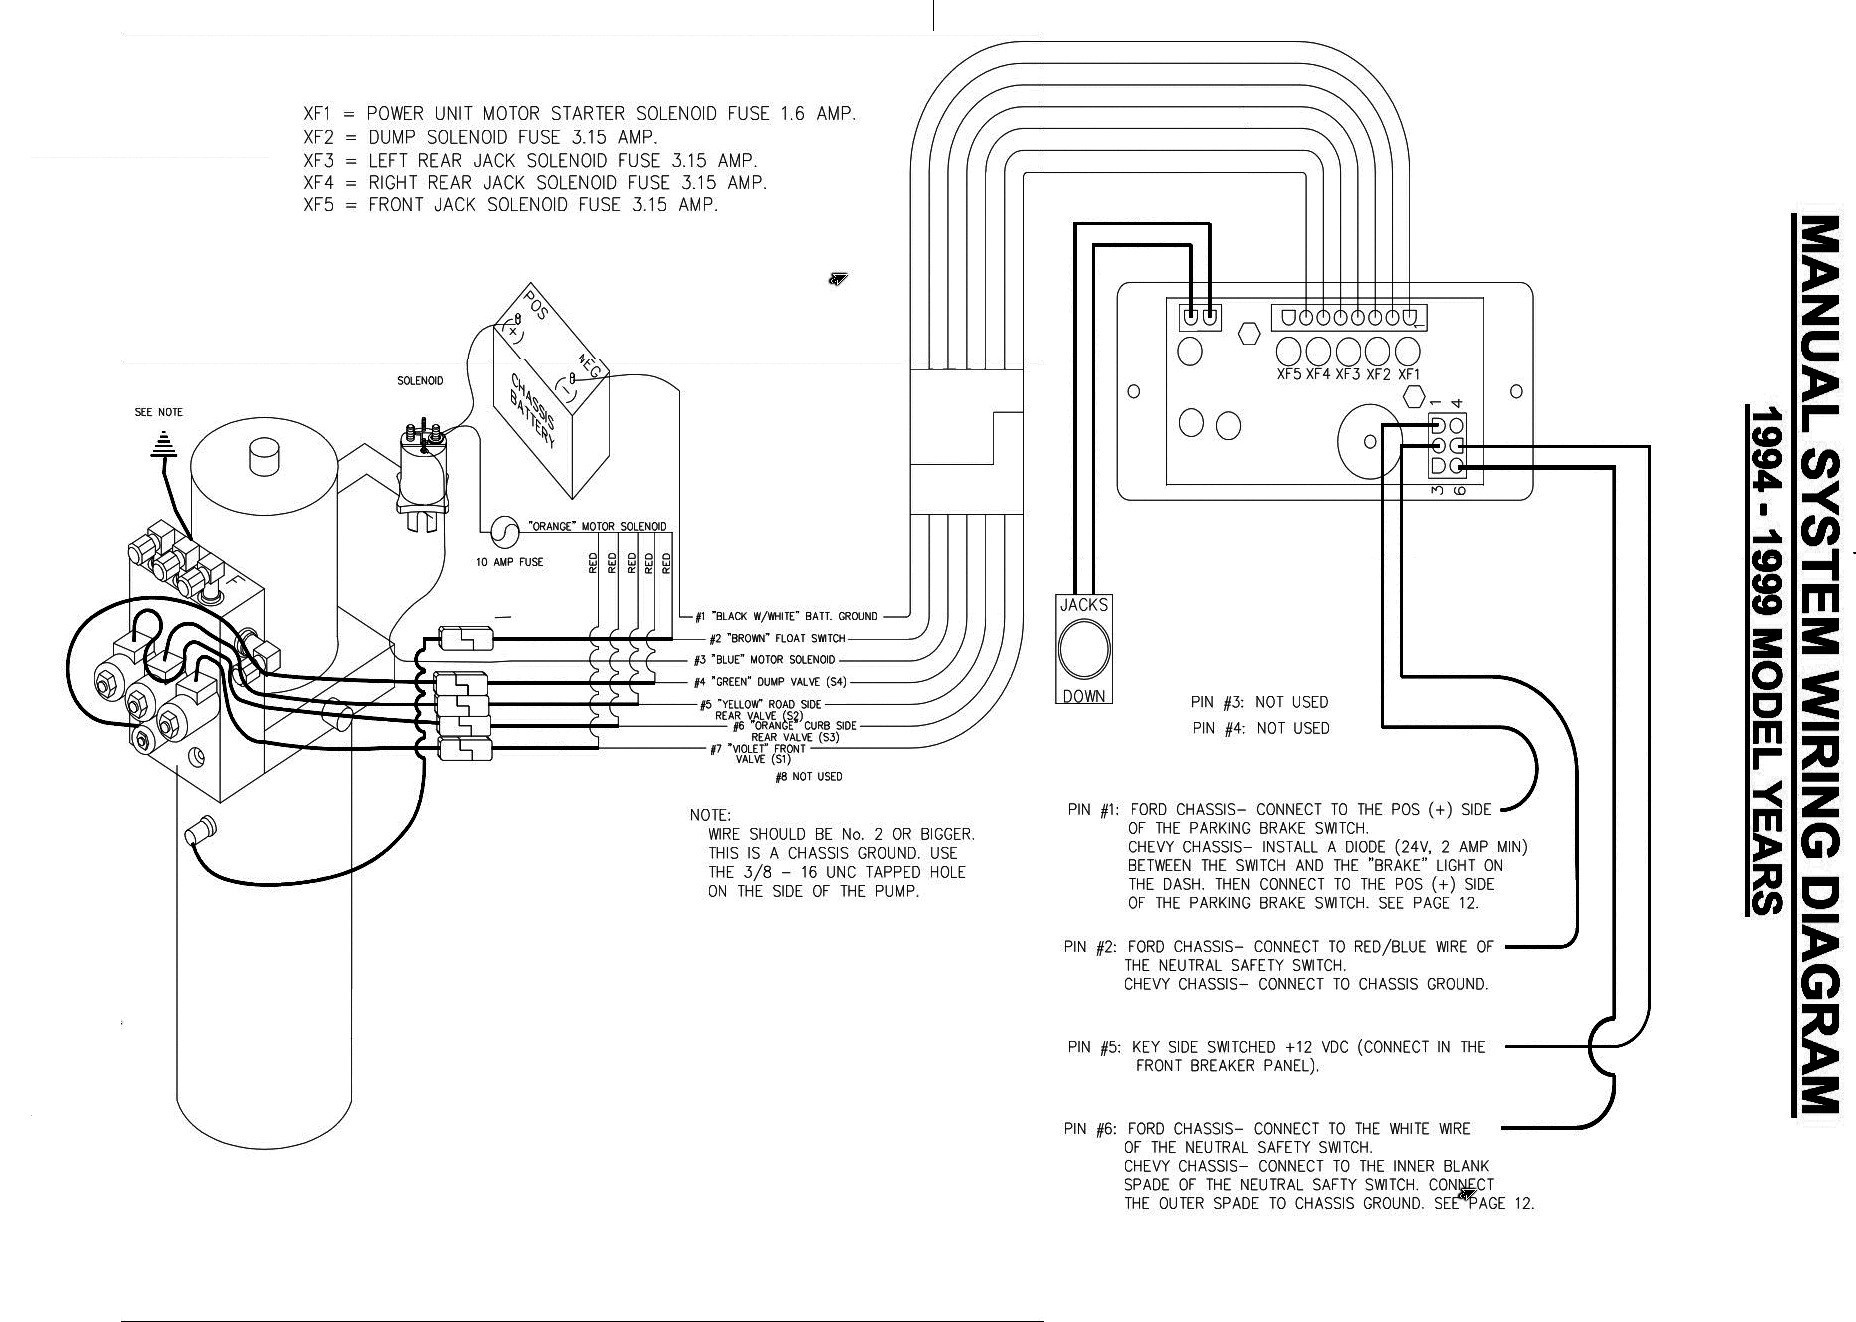 hight resolution of 1996 chevy p30 motorhome wiring diagram